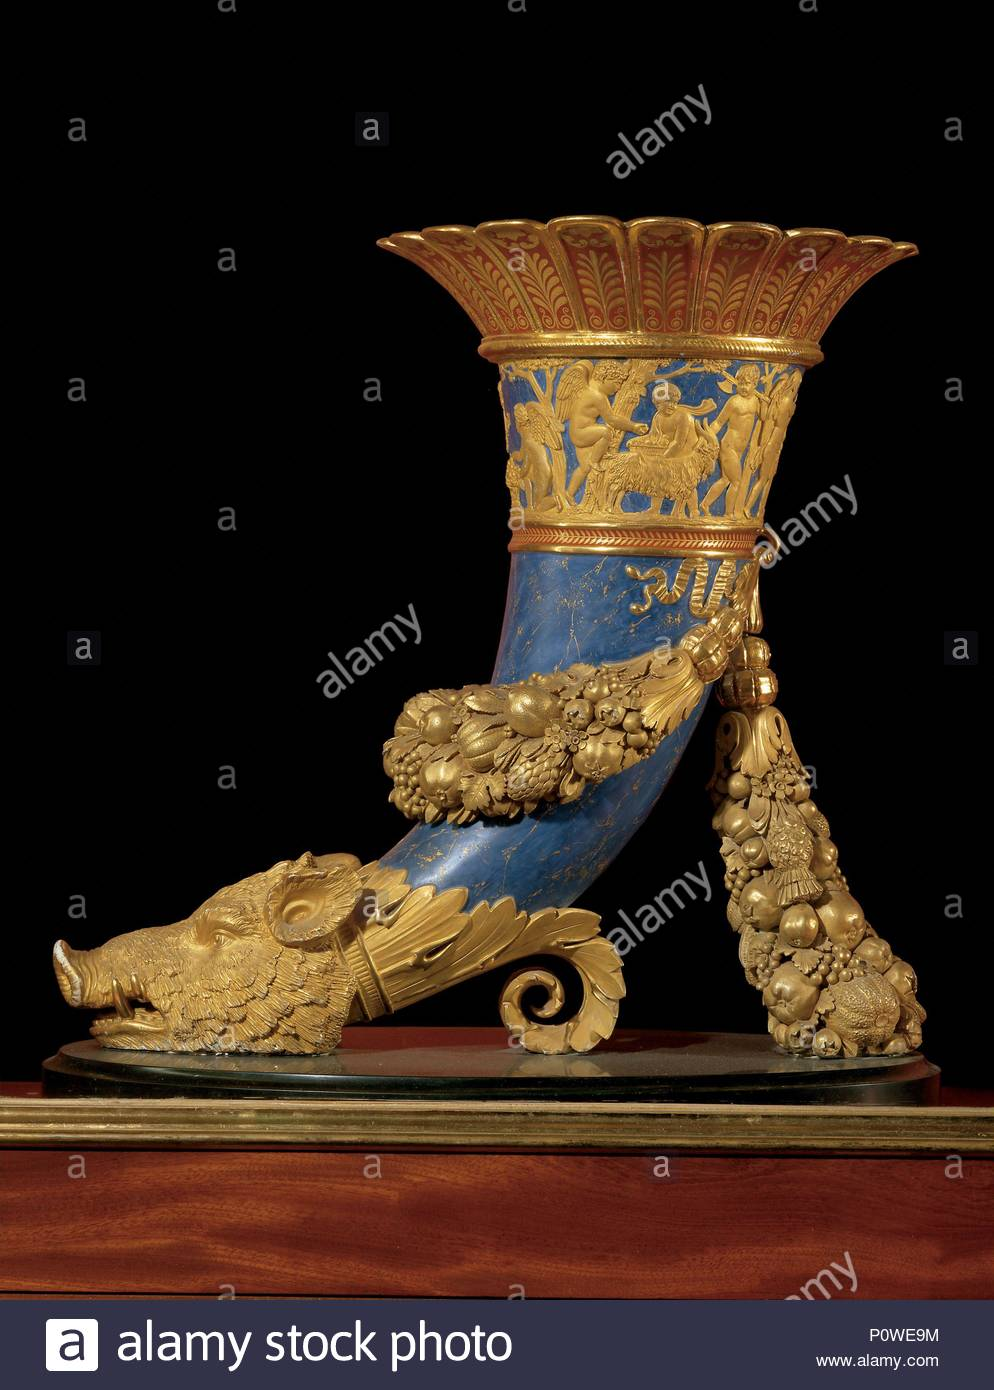 sevres vase france stock photos sevres vase france stock images alamy. Black Bedroom Furniture Sets. Home Design Ideas